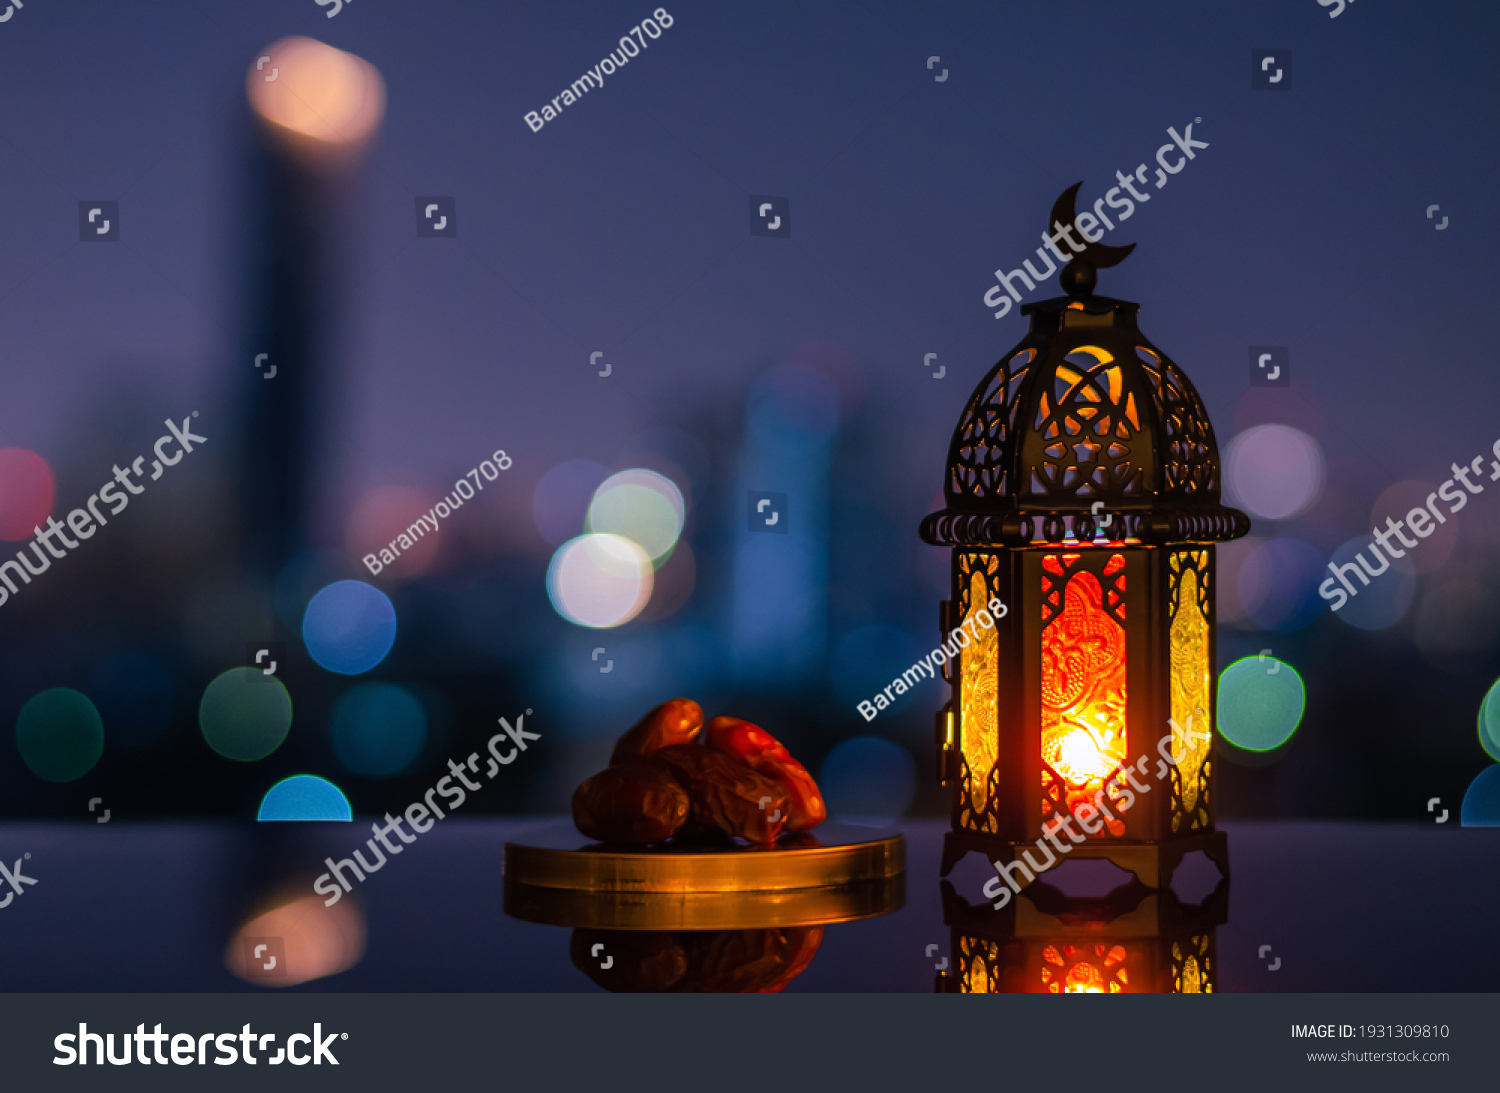 Lantern that have moon symbol on top and small plate of dates fruit with night sky and city bokeh light background for the Muslim feast of the holy month of Ramadan Kareem. #1931309810